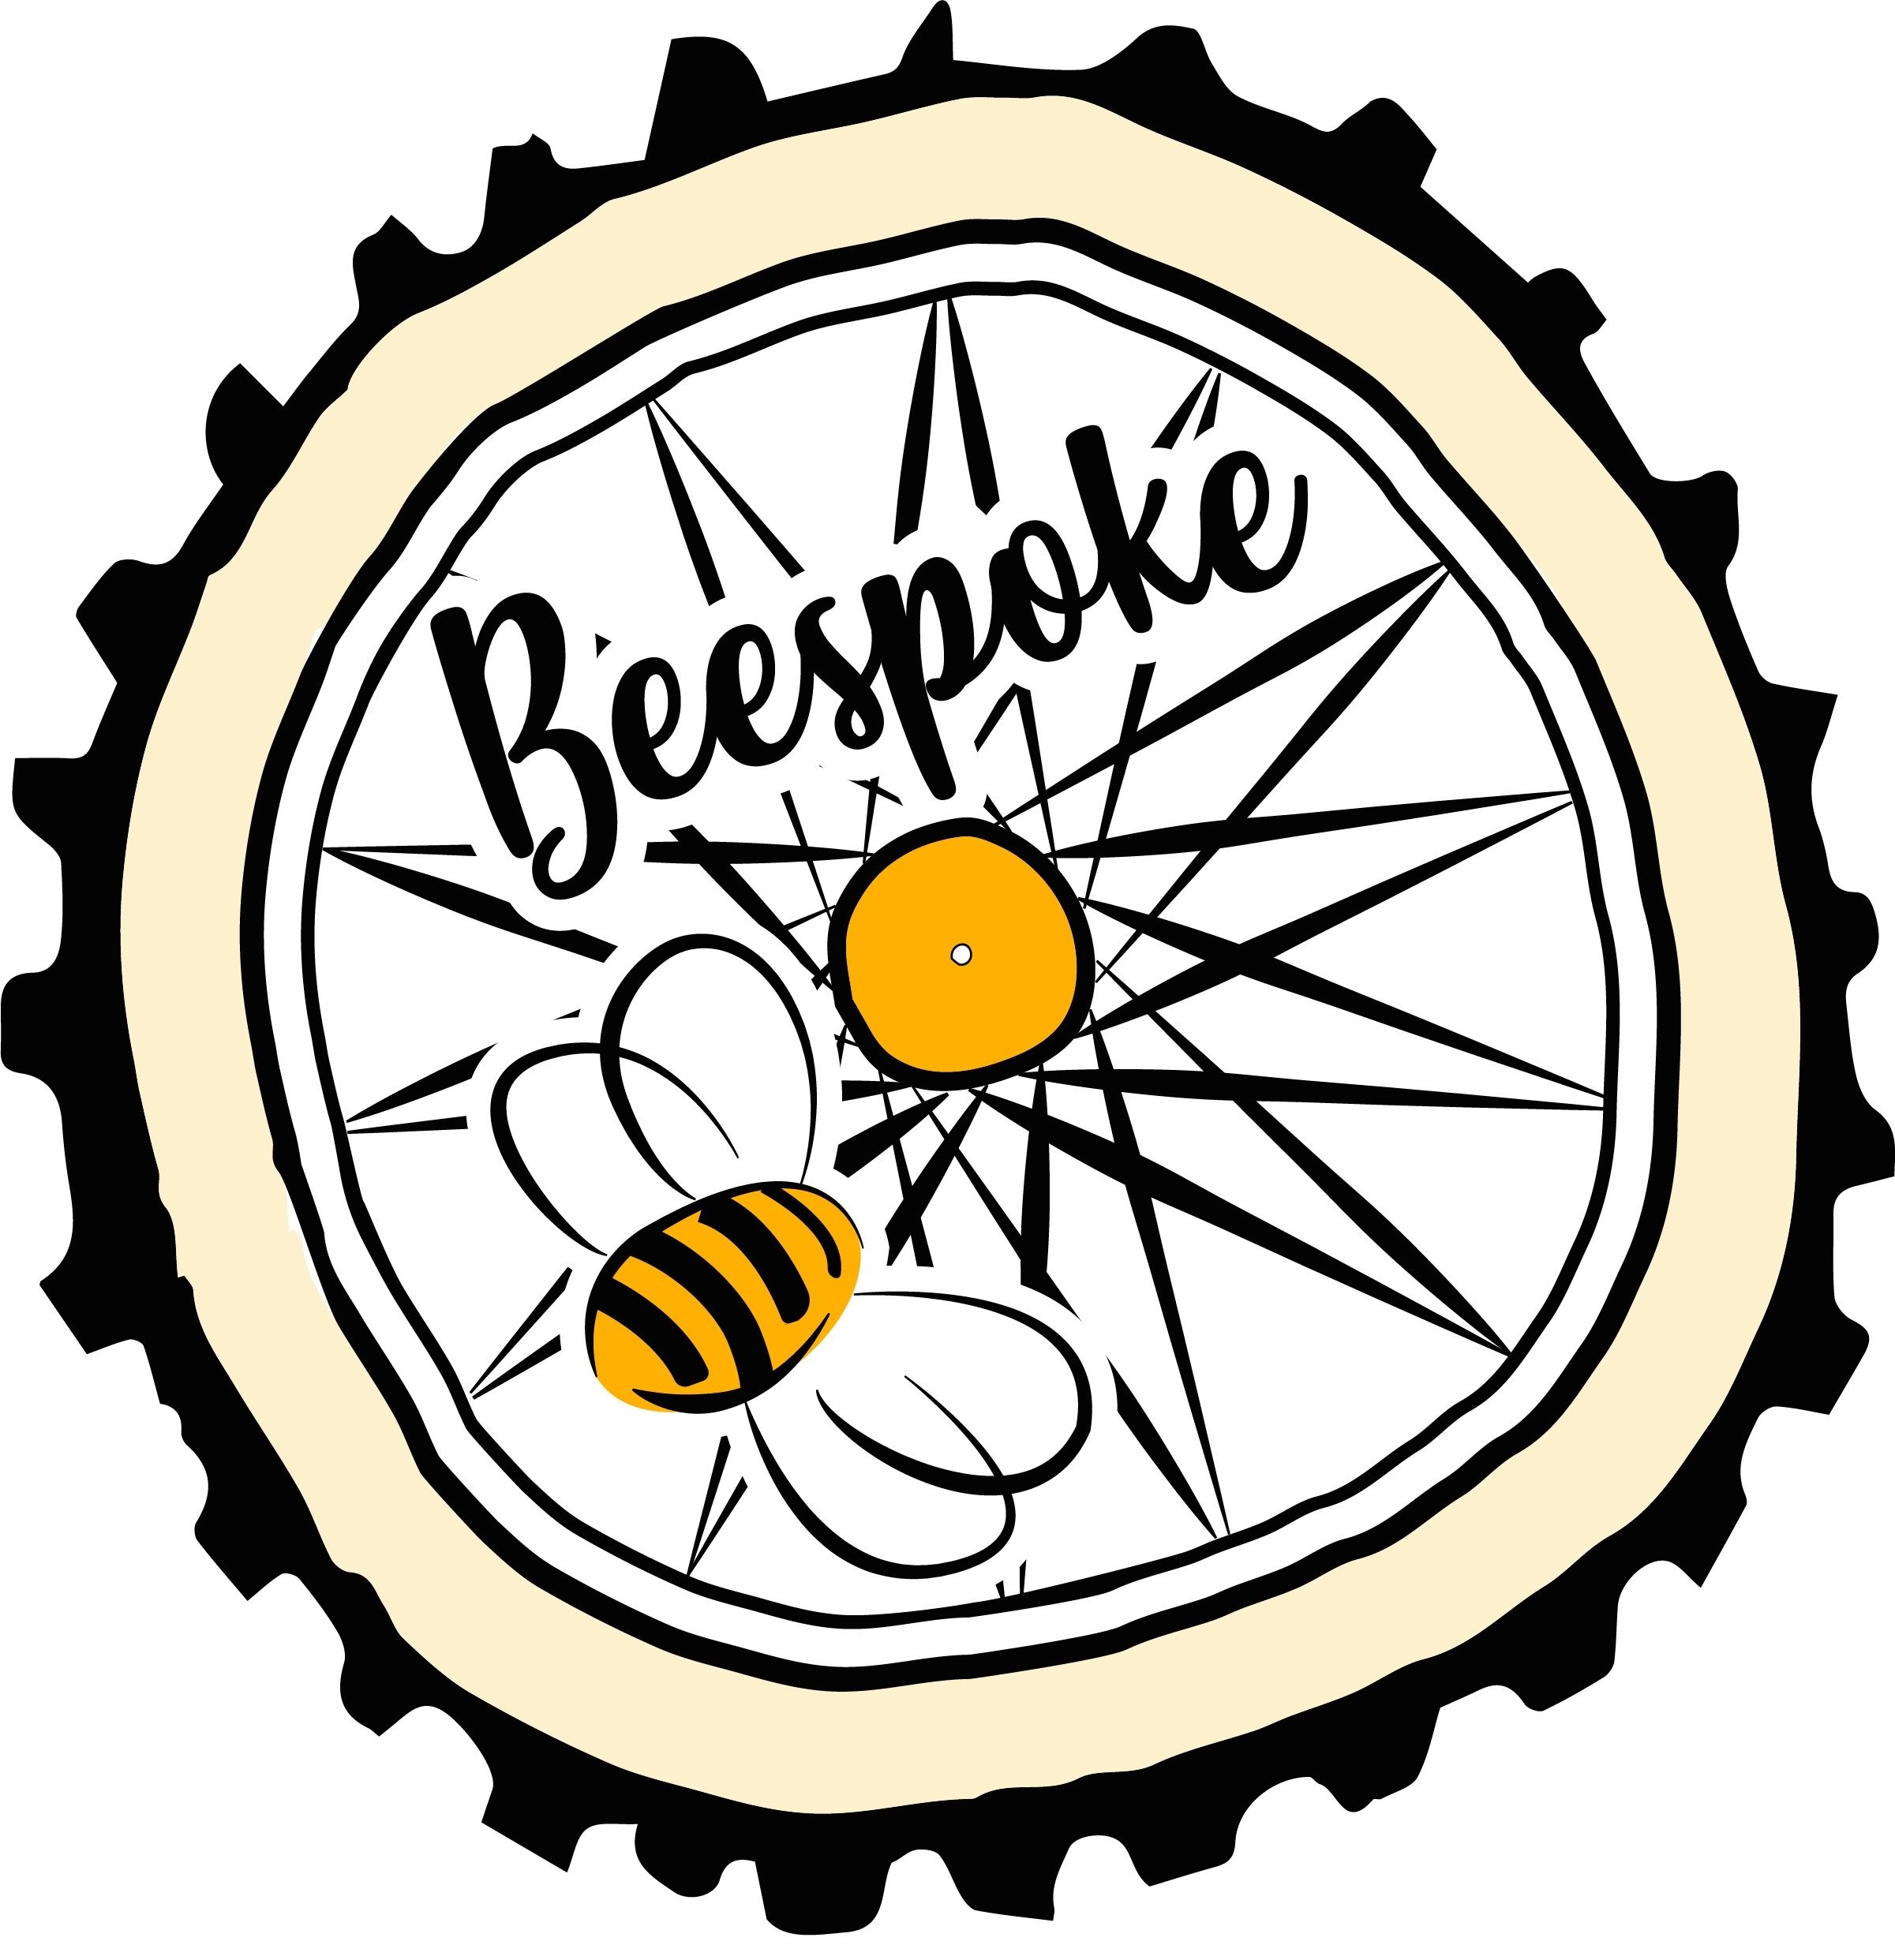 Beespoke Wheels